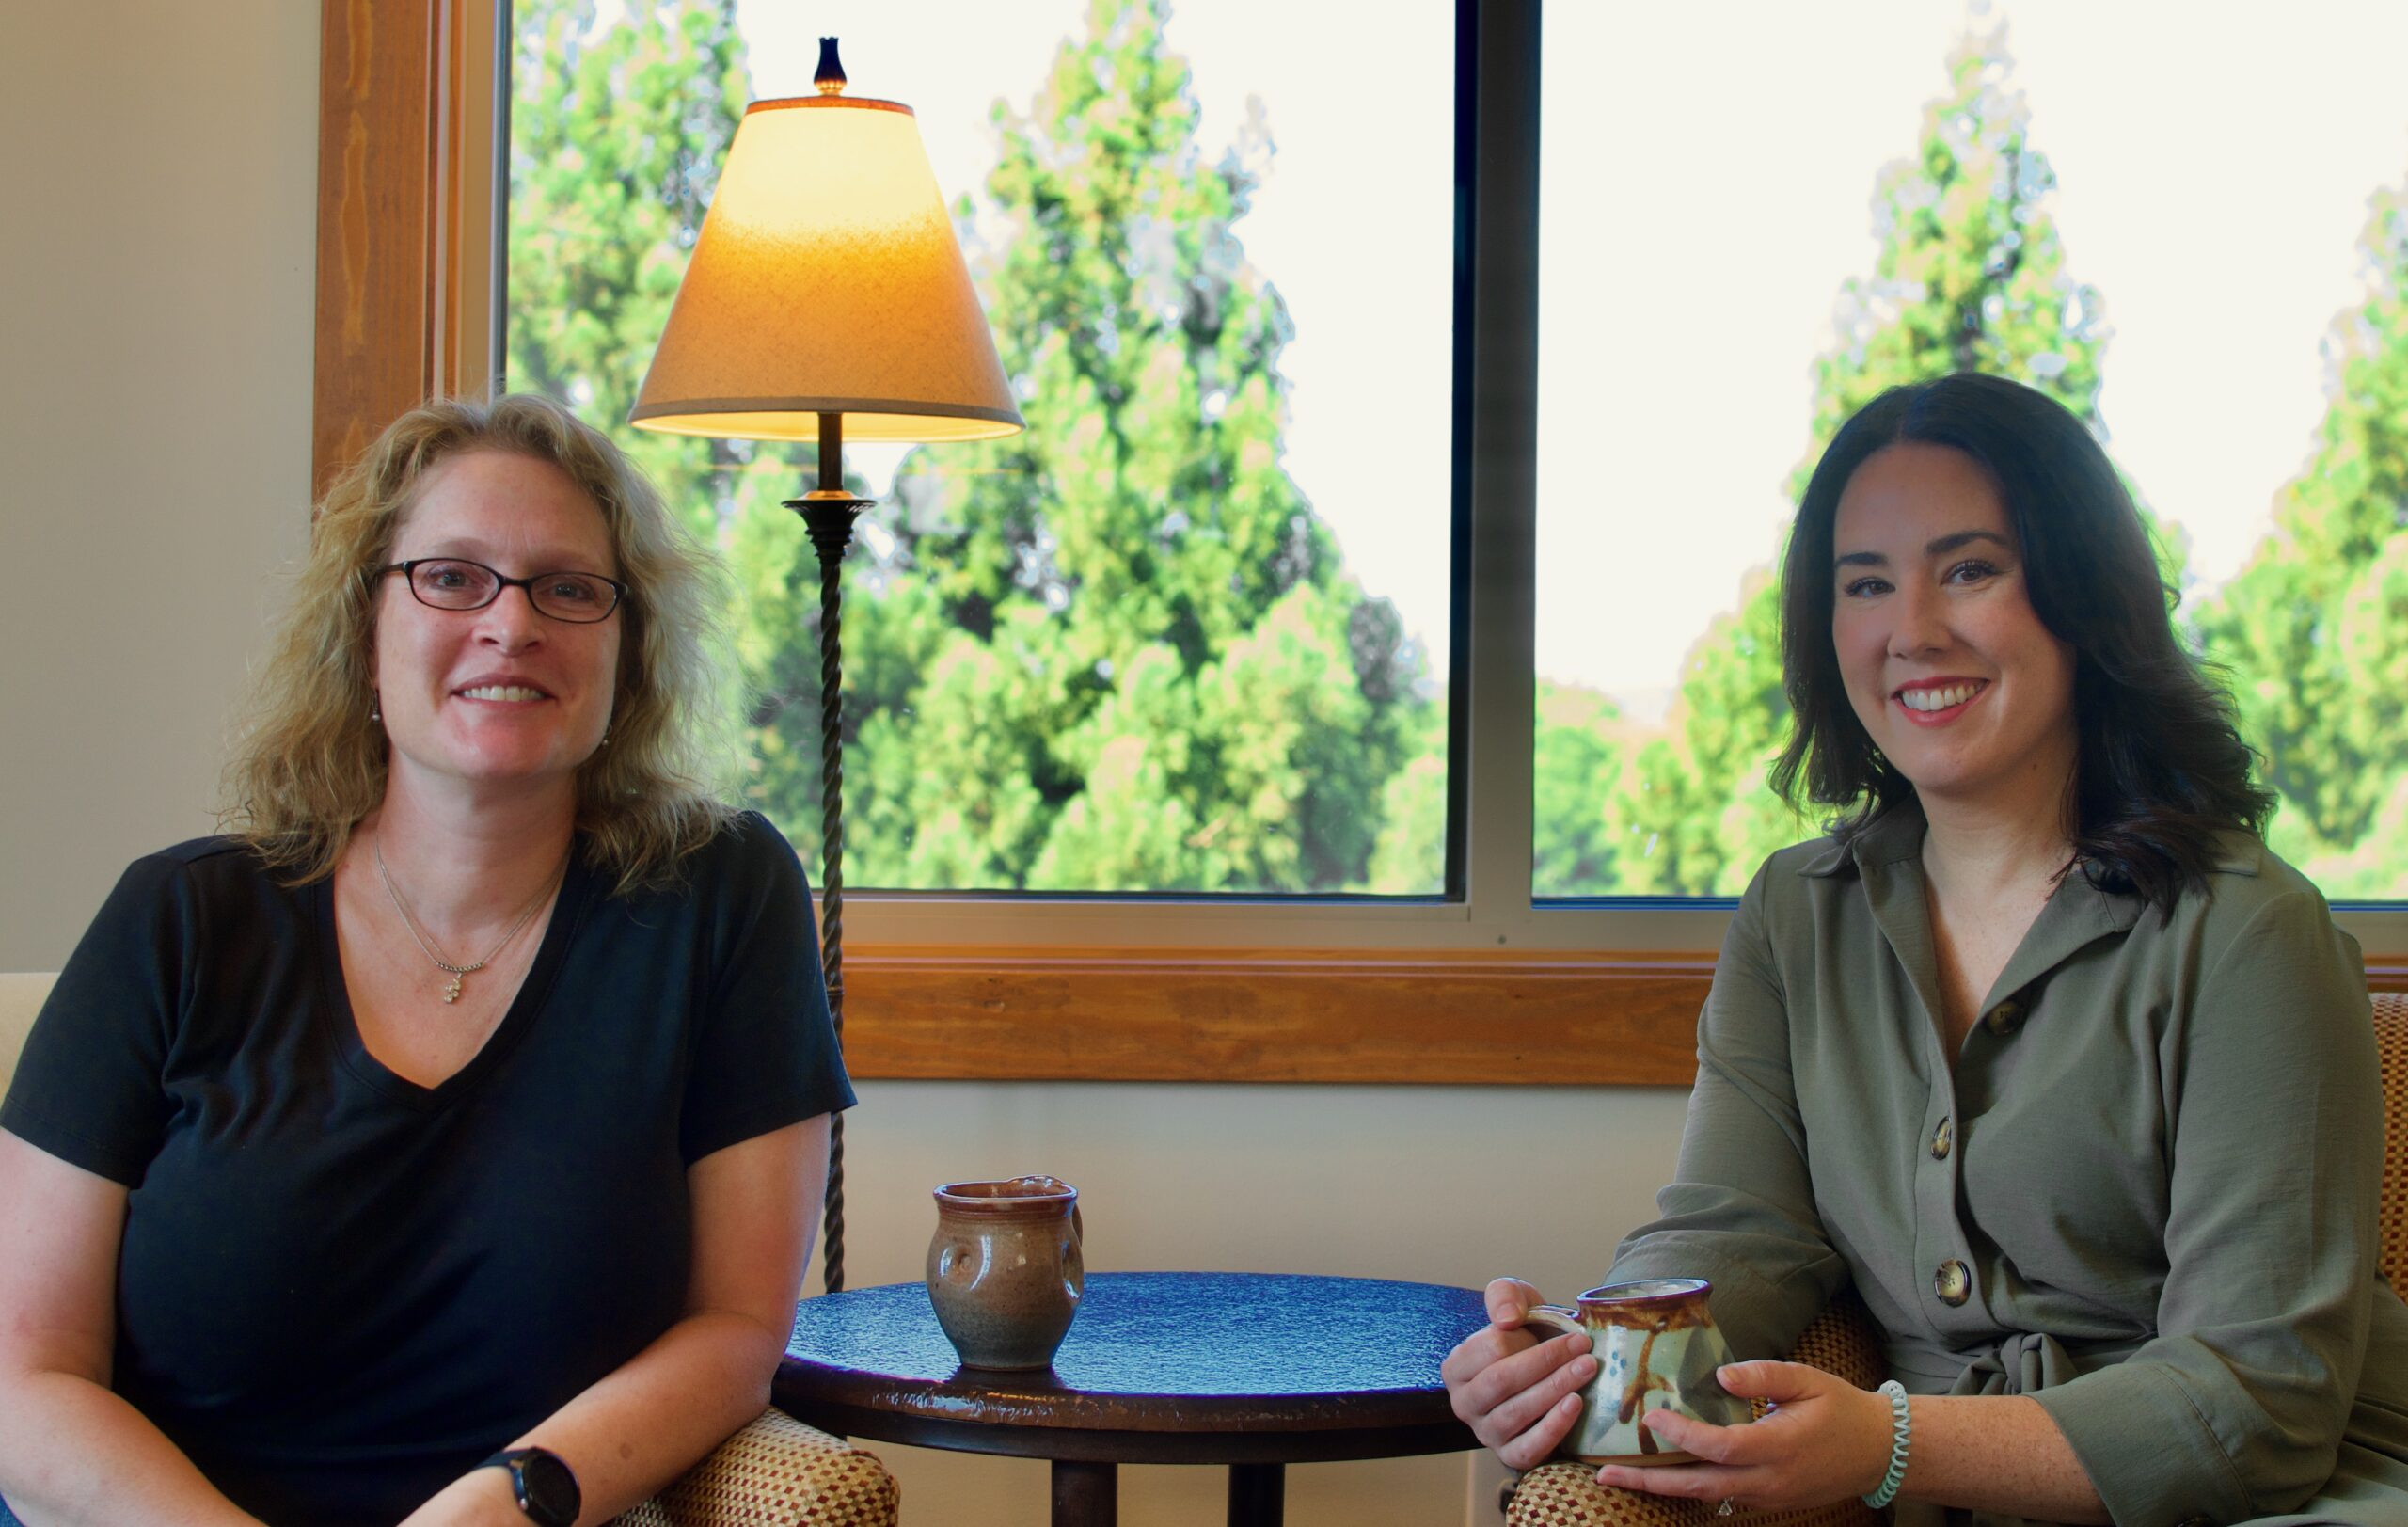 Maryfrances and Alison having coffee and talking about ImpactStory and how much easier it makes program evaluation and storytelling with data for small-and medium-sized nonprofits